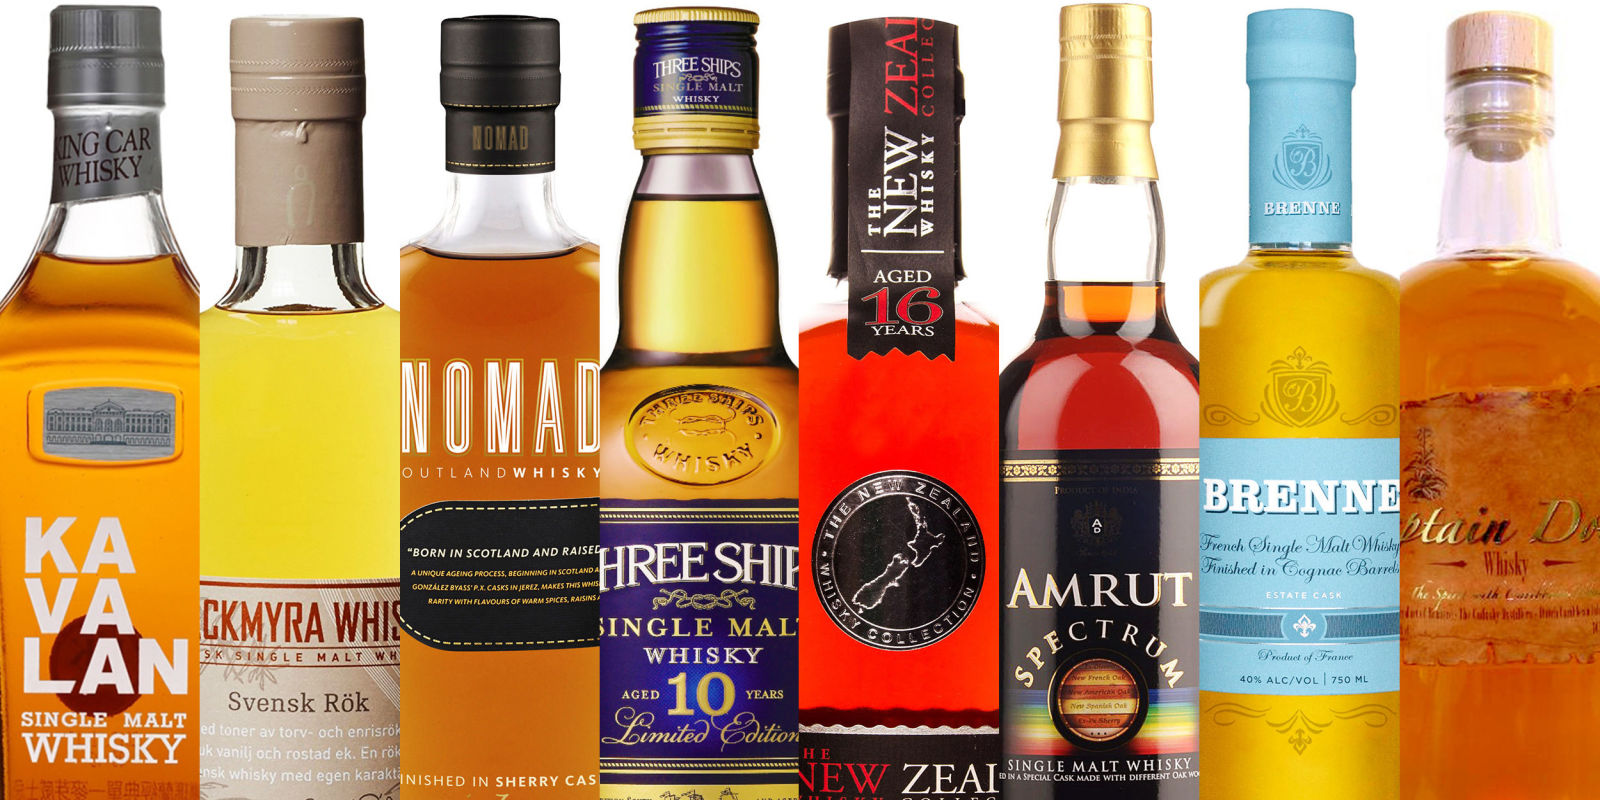 Esquire Names Nomad as Top Whisky From Countries You Didn't Even Know Made Whisky